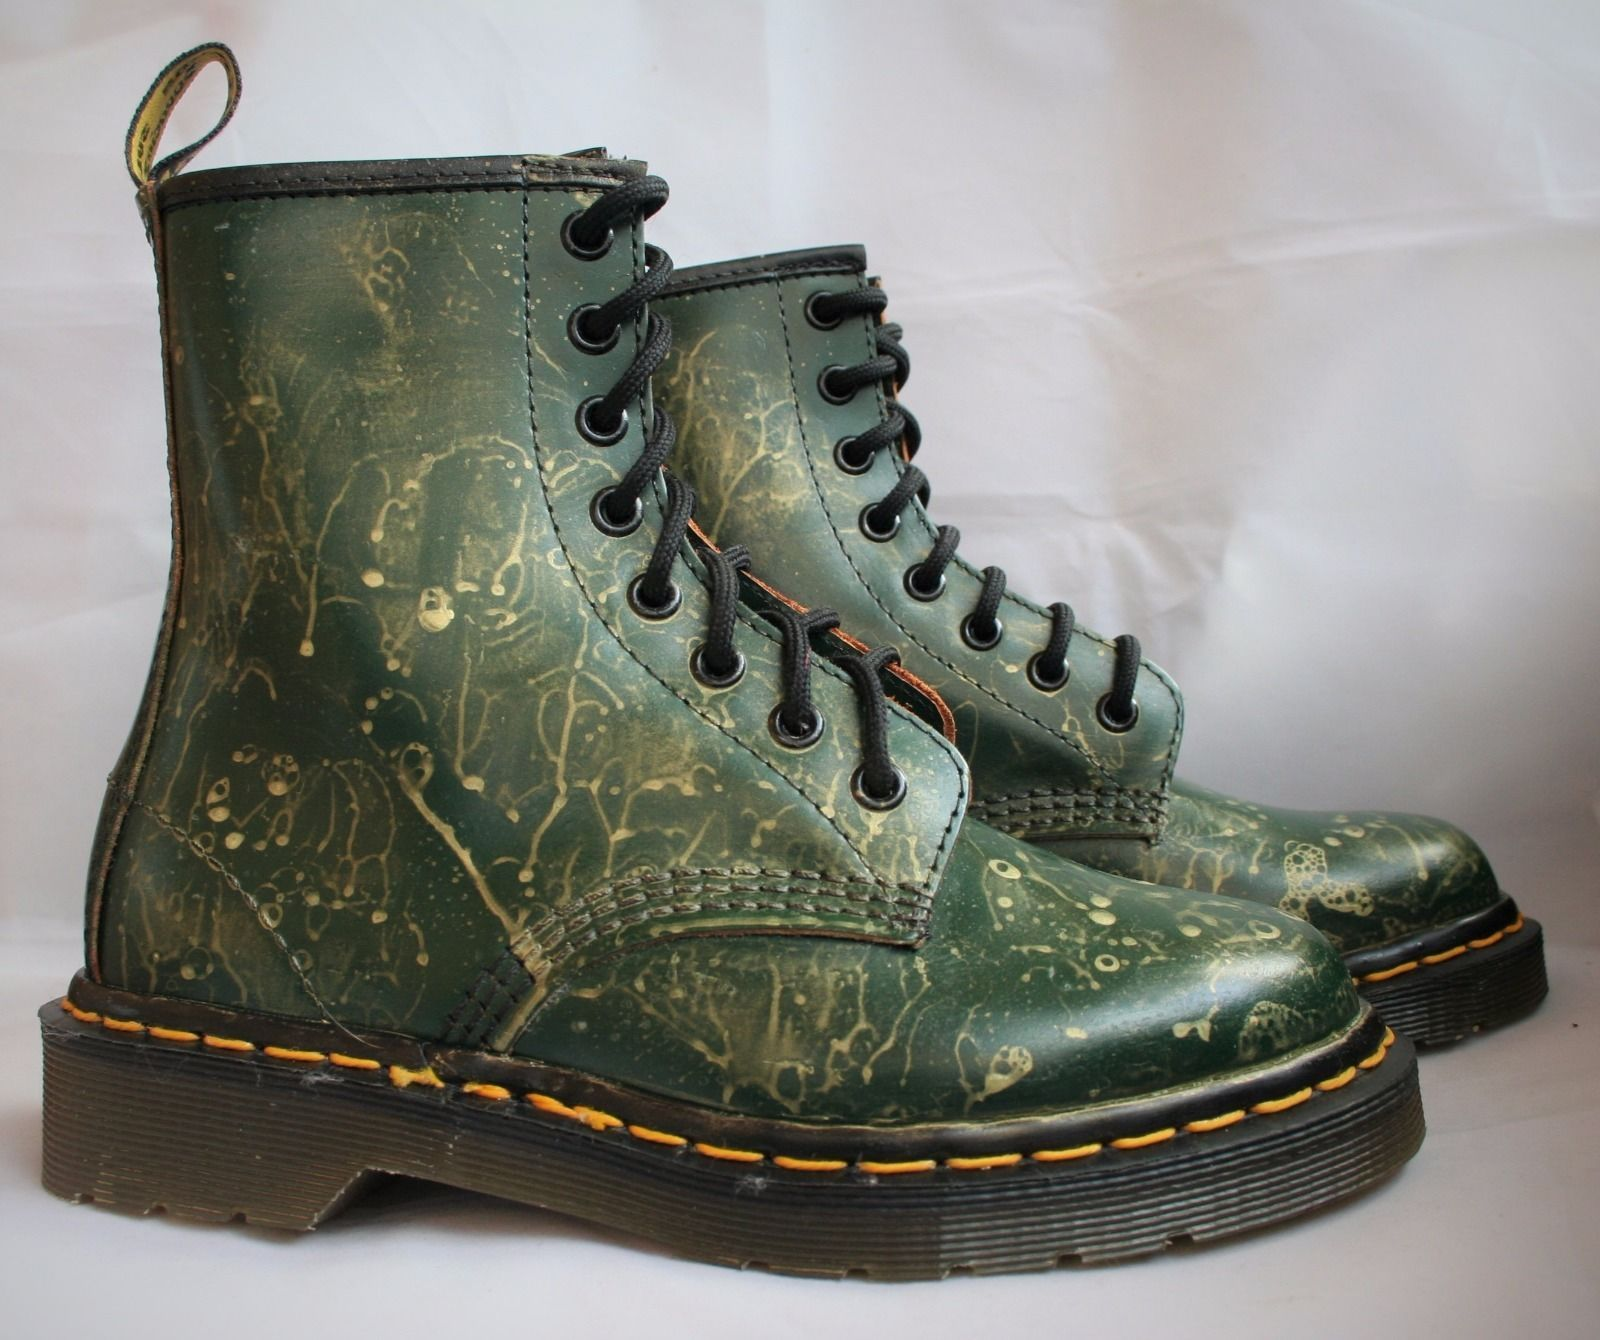 15752fbe4b Dr Martens Made in England 1460 Green new w/o box custom gold paint Docs  size 3 in Clothes, Shoes & Accessories, Women's Shoes, Boots | eBay!